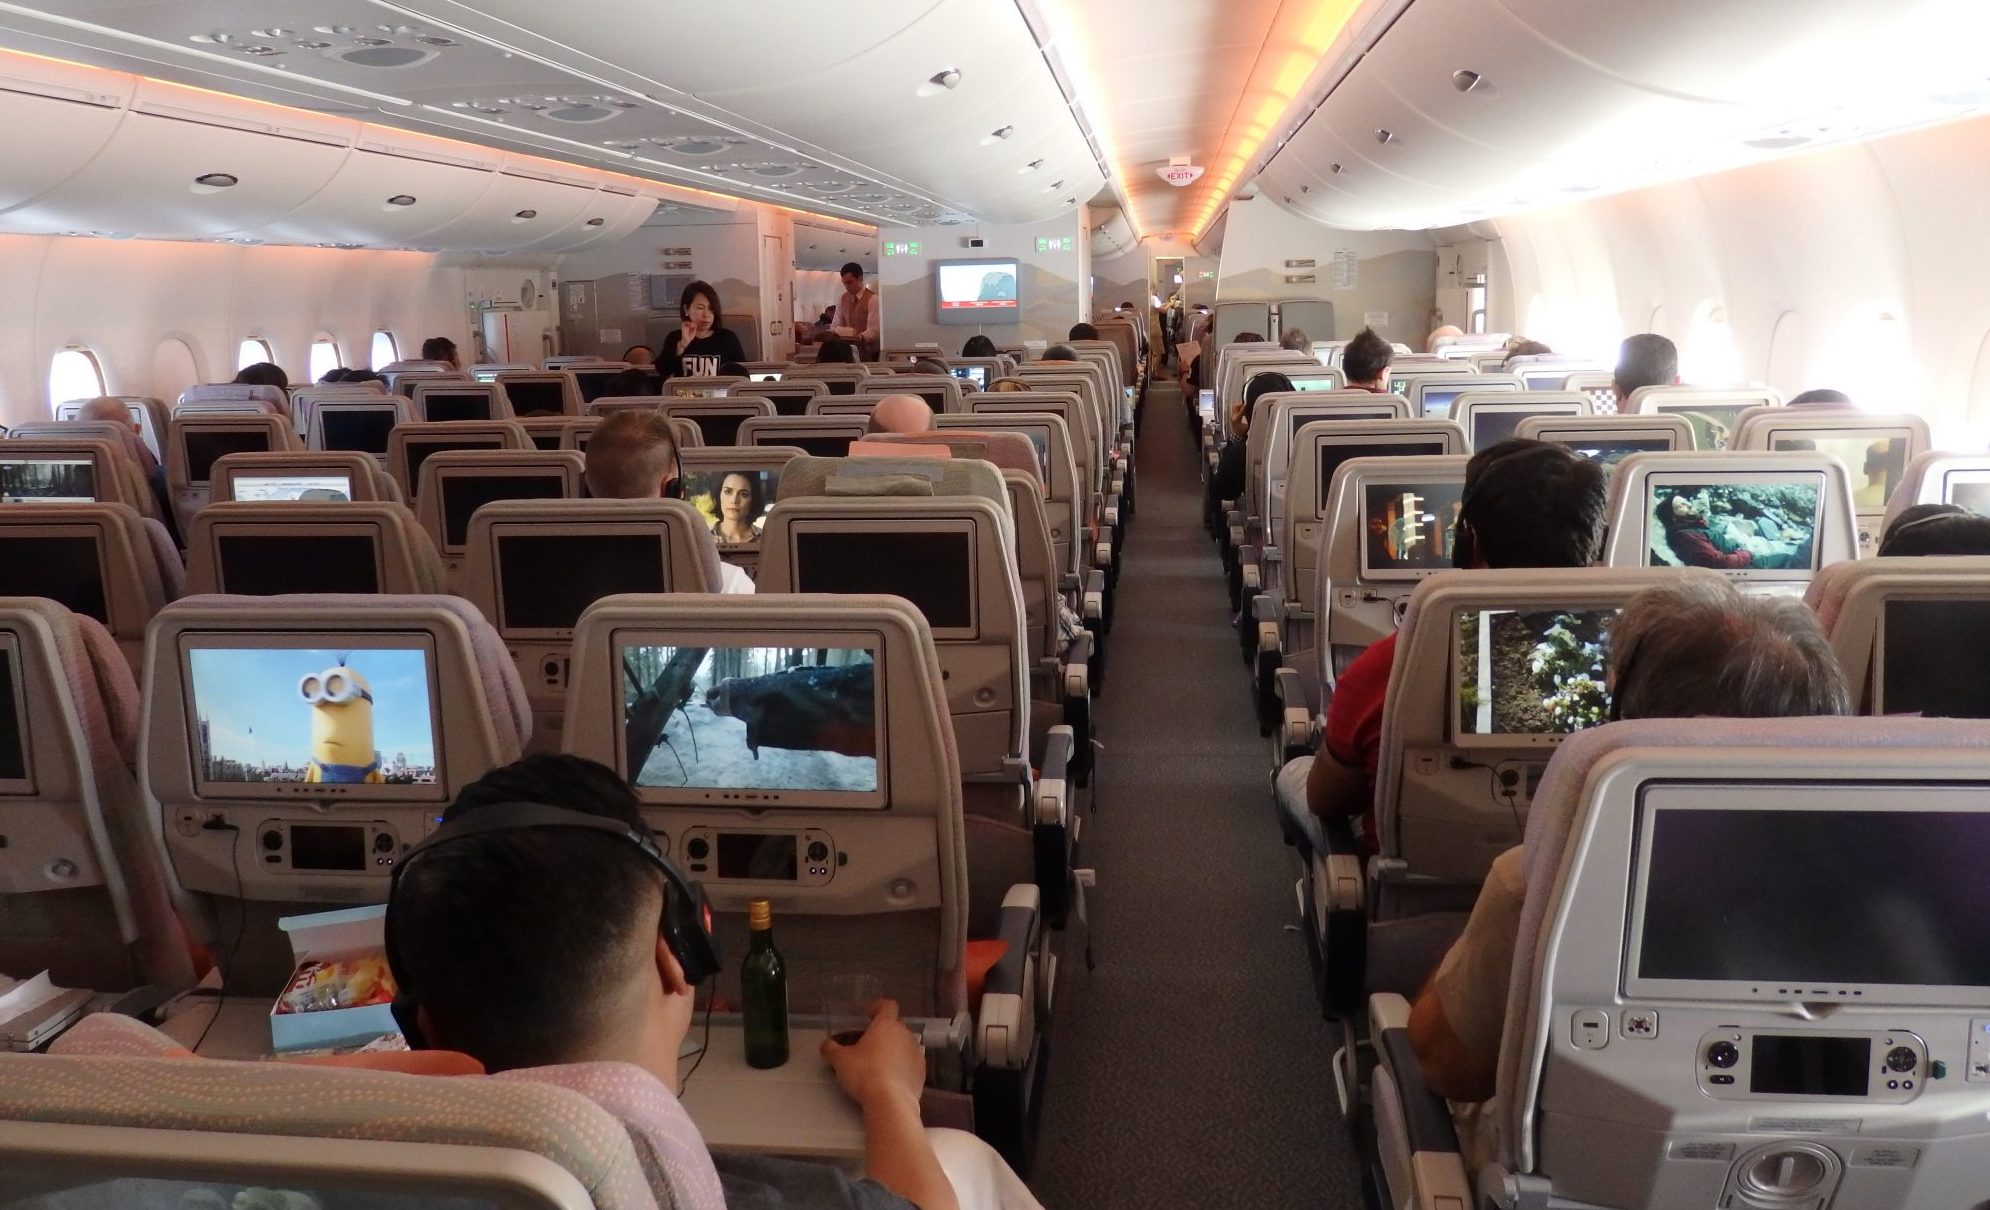 a view down the length of the Emirates A380. You can see the seatback screens here too. The photo was taking in the aisle and looks forward in the plane.